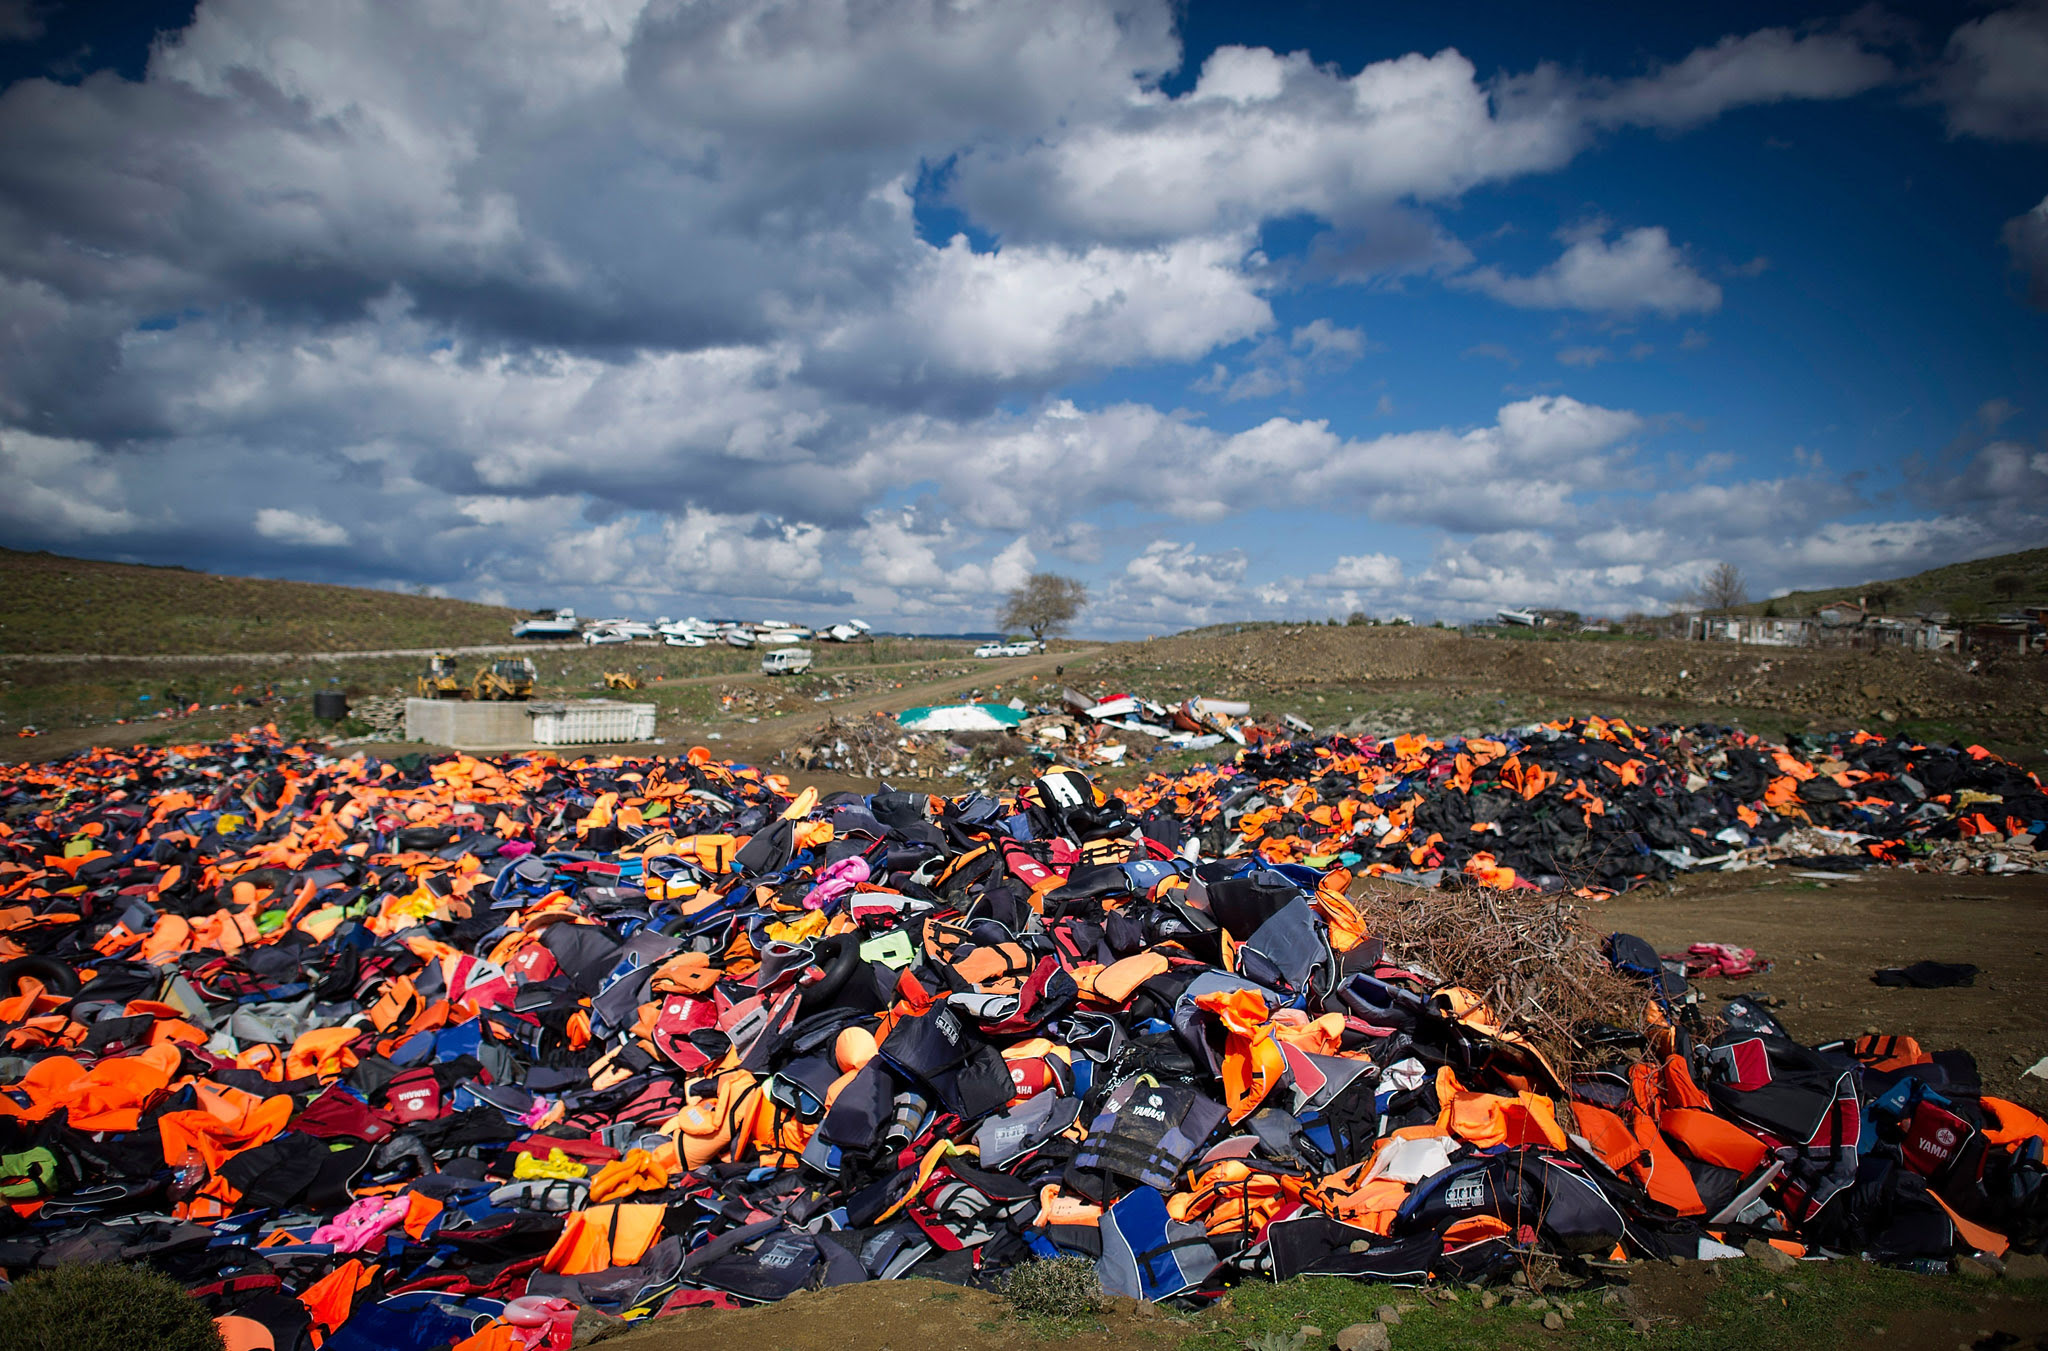 Greek Island Of Lesbos On The Frontline Of the Migrant Crisis...MITHYMNA, GREECE - MARCH 10:  Hundreds of used life vests lie on a makeshift rubbish dump hidden in the hills above the town on March 10, 2016 in Mithymna, Greece. Local authorities start to clean the beaches from life vests and destroyed dinghies, used by refugees and migrants after crossing the sea from Turkey to Lesbos. The village of Mithymna is the northest town of the Island of Lesbos and located 75 kilometres north of the Capitol Mytilini. Migrants and refugees are still arriving on the shores of the Island of Lesbos, while Joined Forces of the Standing NATO (North Atlantic Treaty Organisation) Maritime Group 2 are patrolling the coast of the greek Island of Lesbos and the turkish coast. Turkey has announced on Monday to take back illegal migrants from Syria and to exchange those with legal migrants.  (Photo by Alexander Koerner/Getty Images)